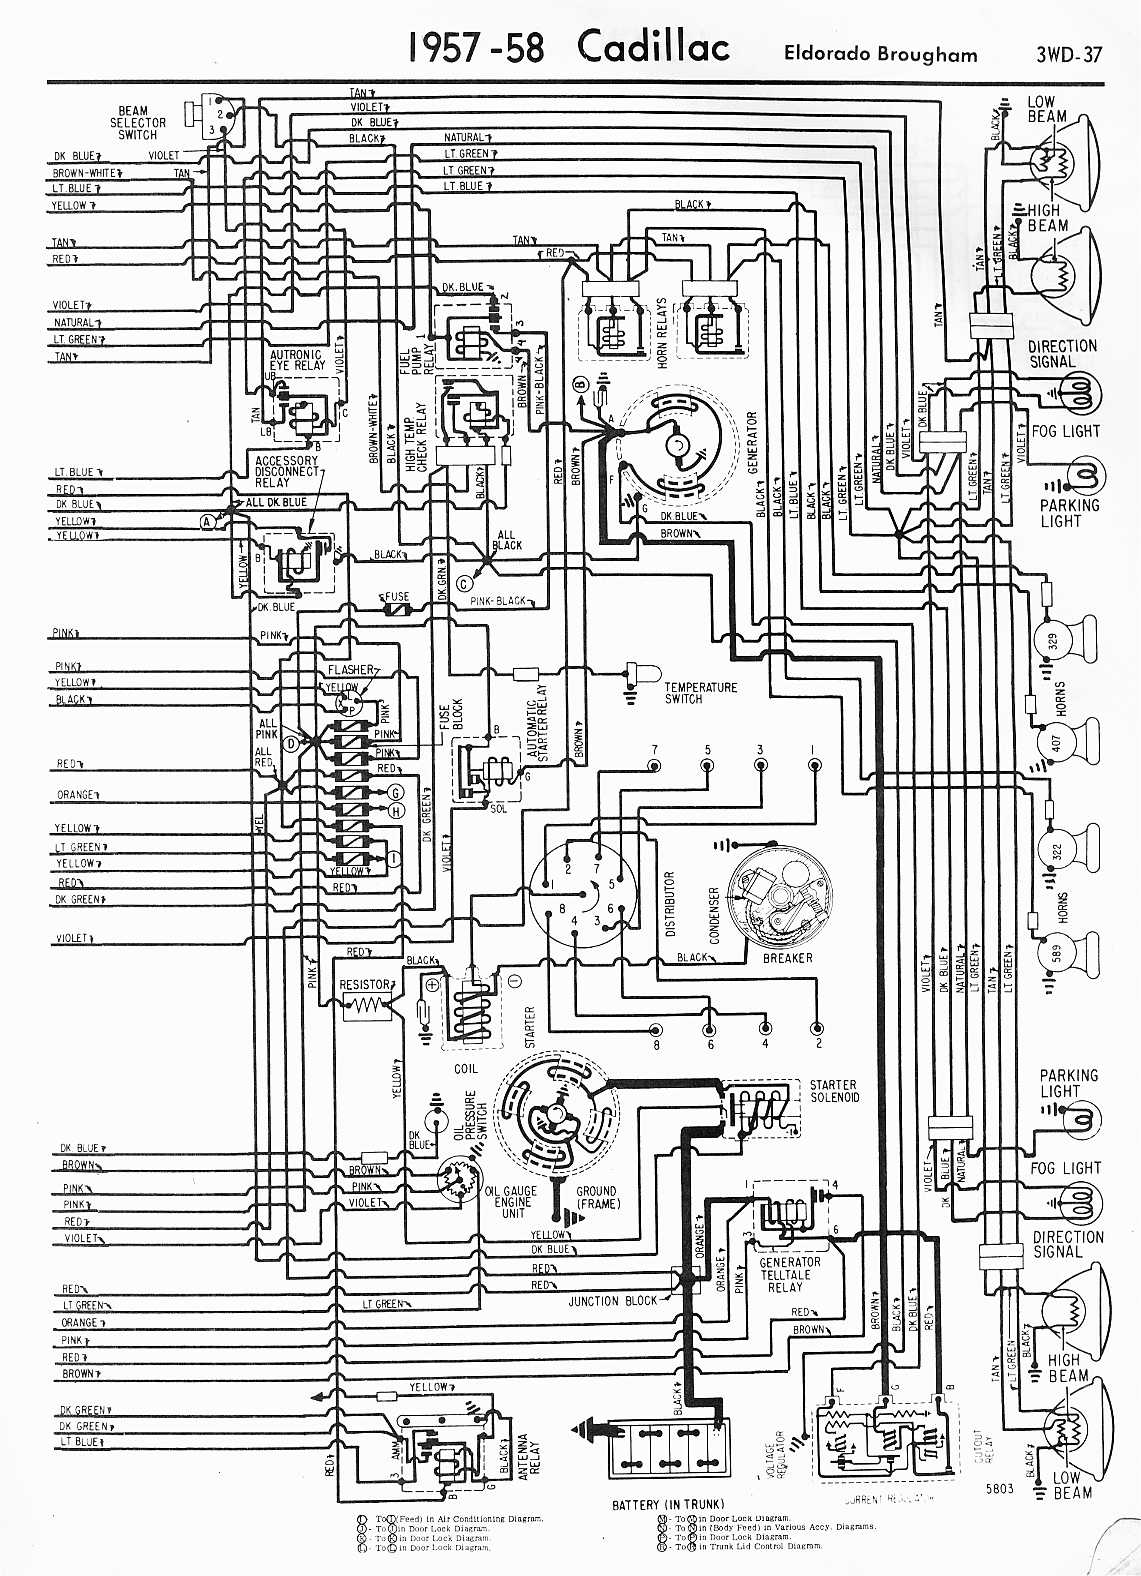 1962 Impala 2 Speed Wiper Motor Wiring Diagram Library 1959 Ford Starter Solenoid Cadillac Diagrams 1957 1965